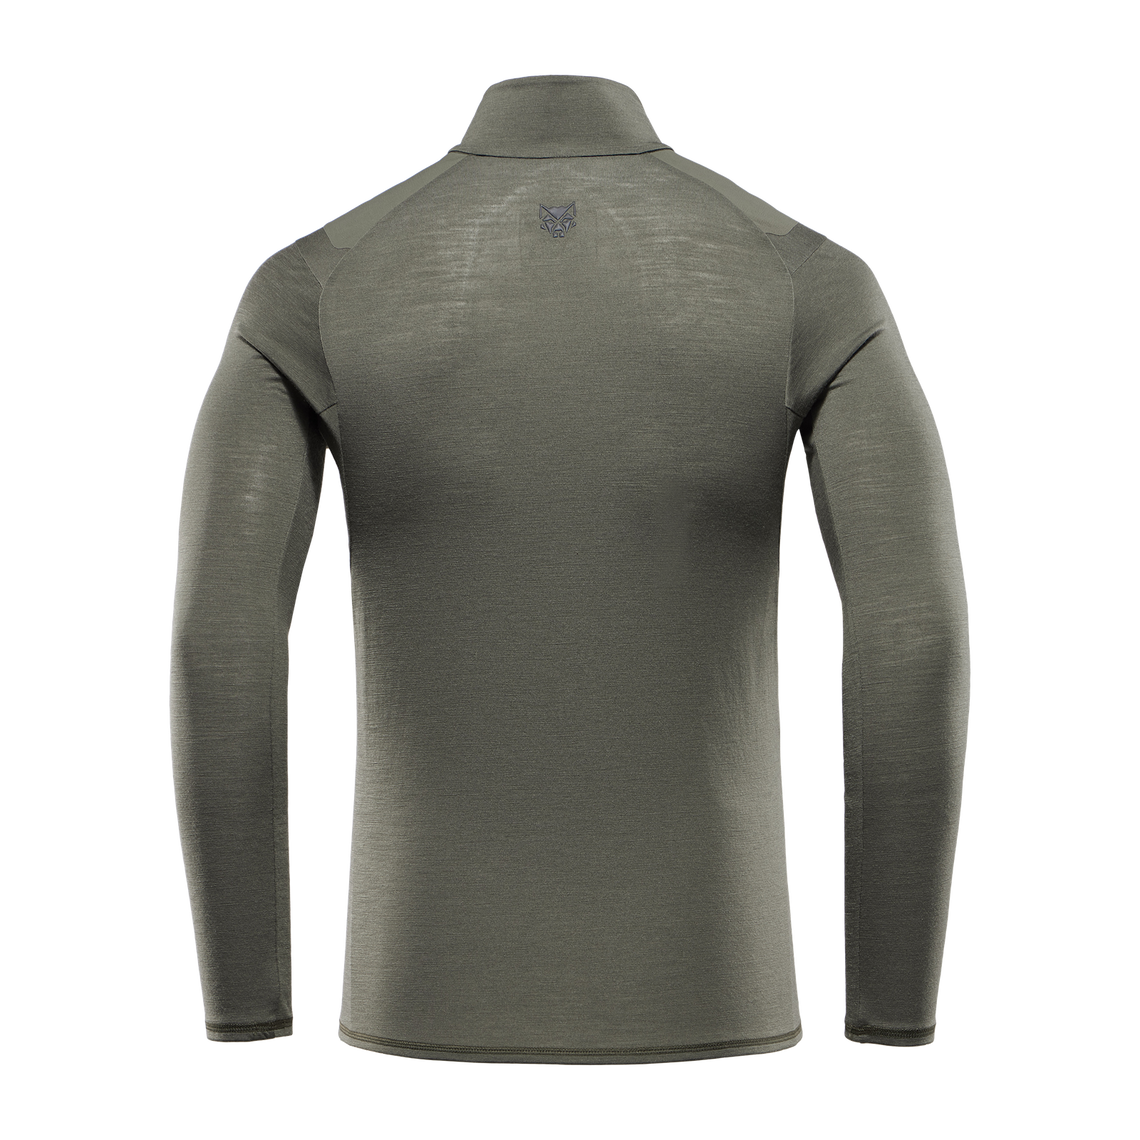 Tahr Merino Half-Zip Long Sleeve Shirt